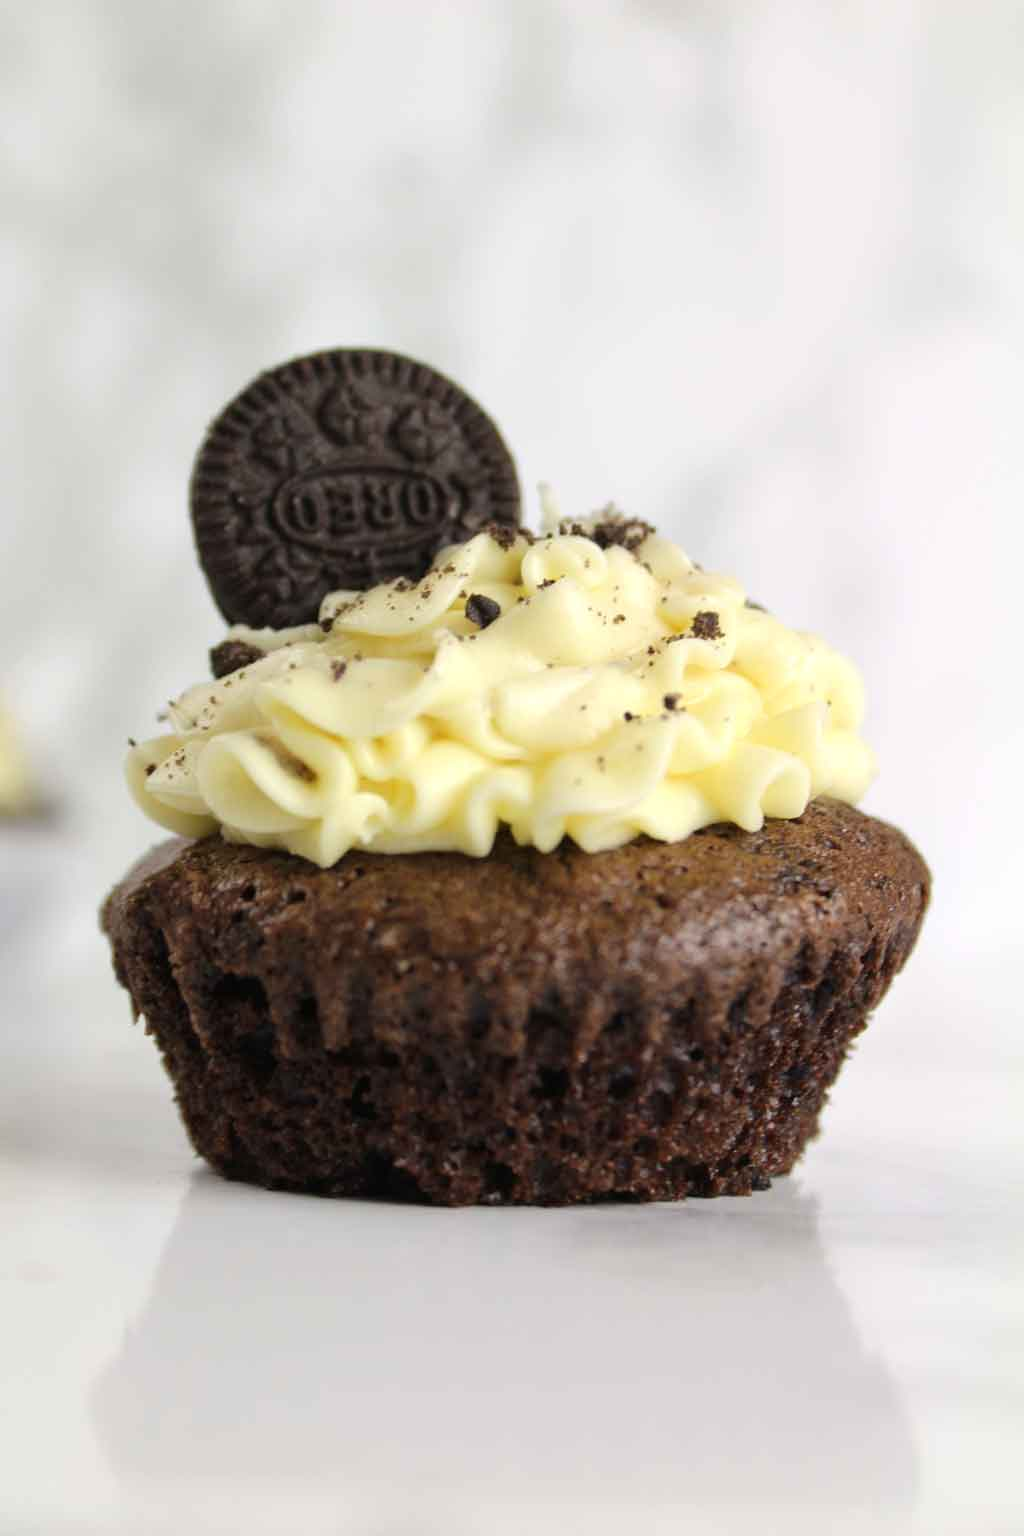 a vegan Oreo cupcake with the wrapper taken off